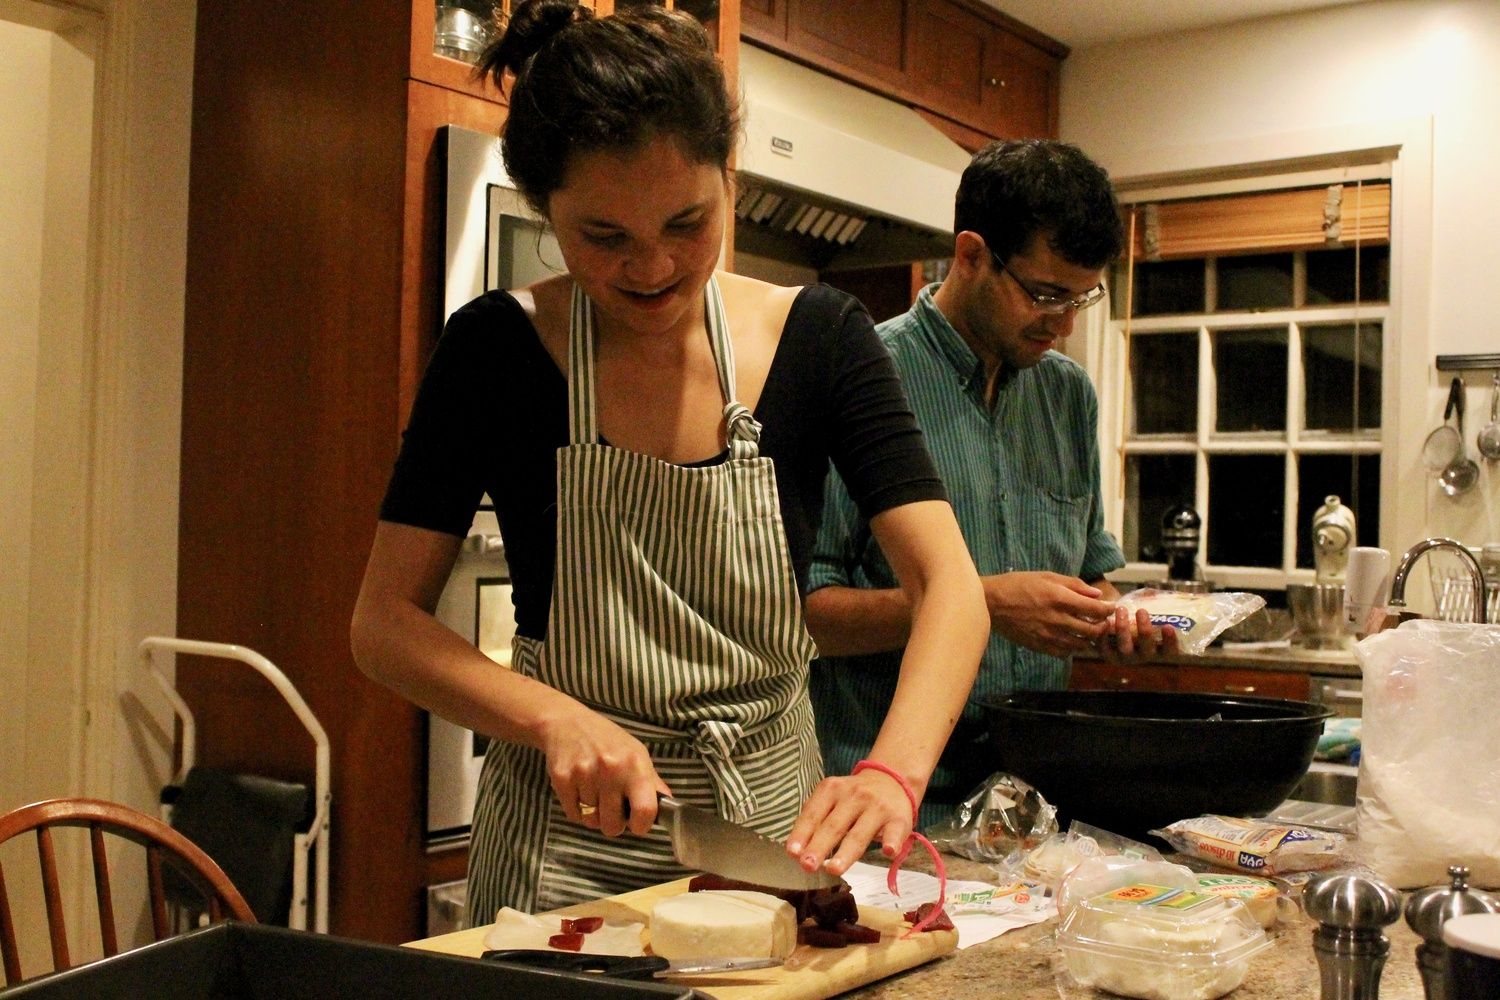 8:07 p.m. Andres Ballesteros '13 and Rebecca Cooper '11 bake in Apthorp House in preparation for Adams House Tea.